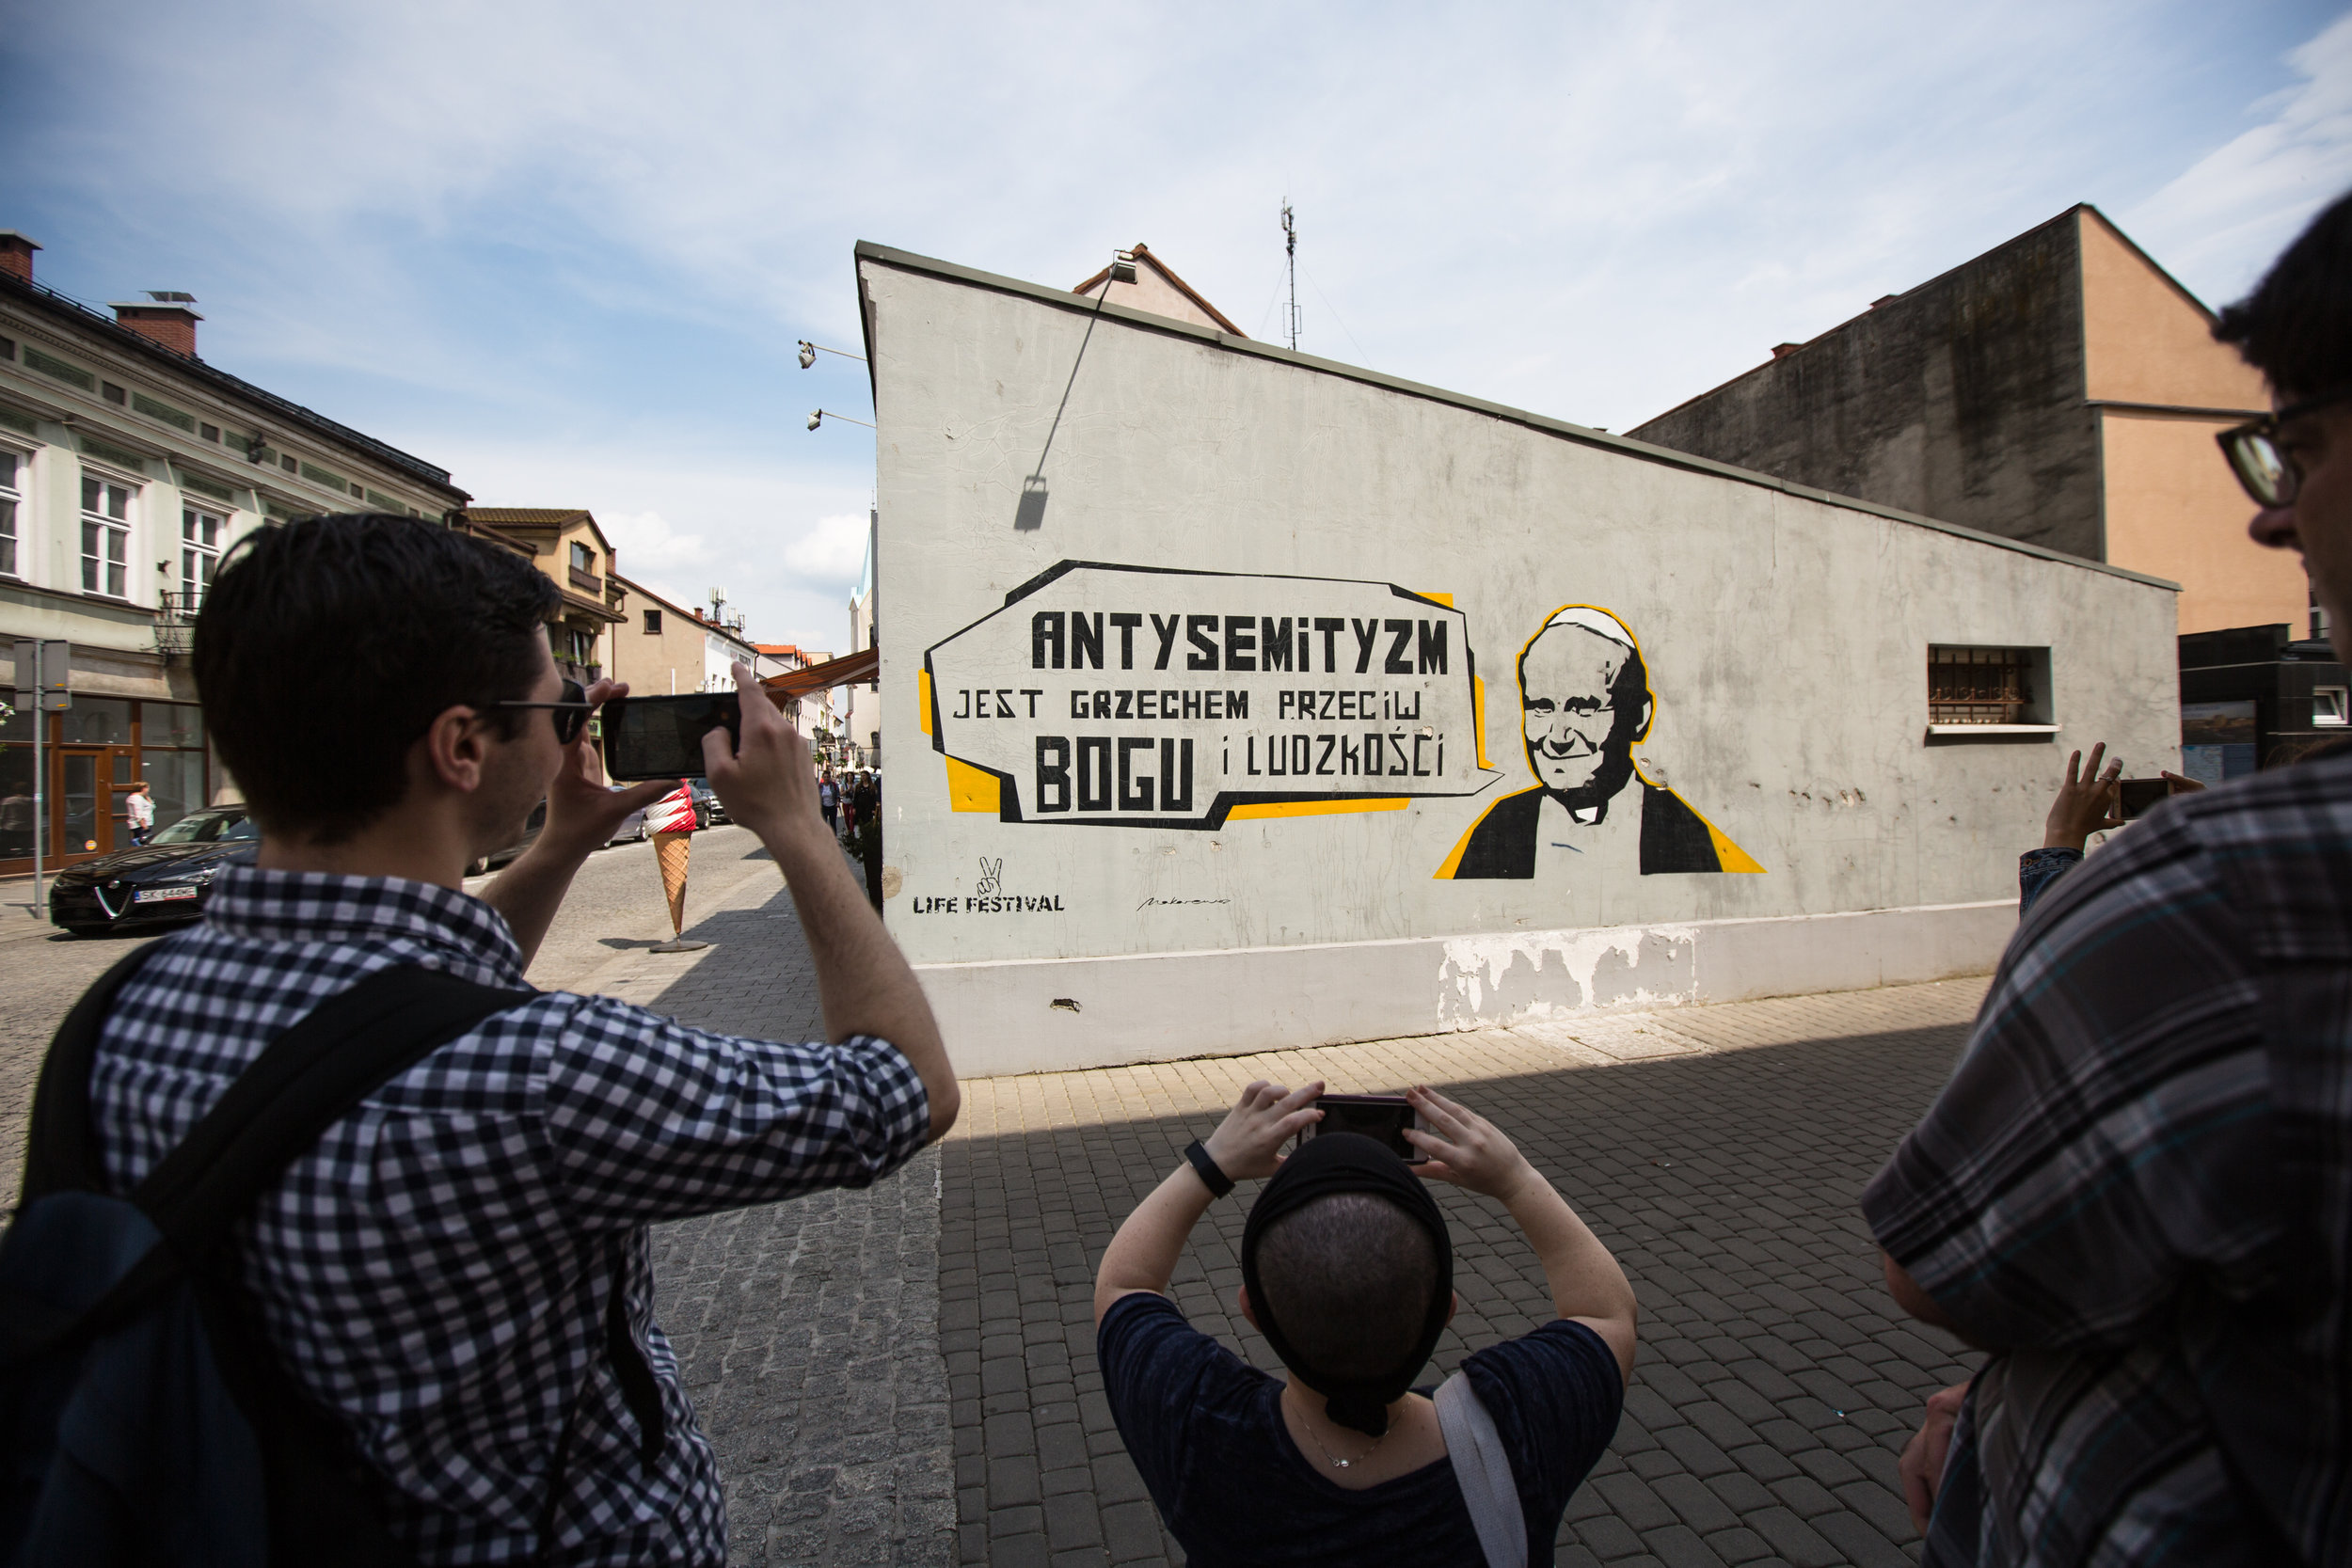 """Participants photograph a mural with an image of the Pope and the caption """"Antisemitism is a sin against man and humanity"""" on May 27, 2019 in Oswiecim, Poland. (Photo by Elan Kawesch/TRTN)"""